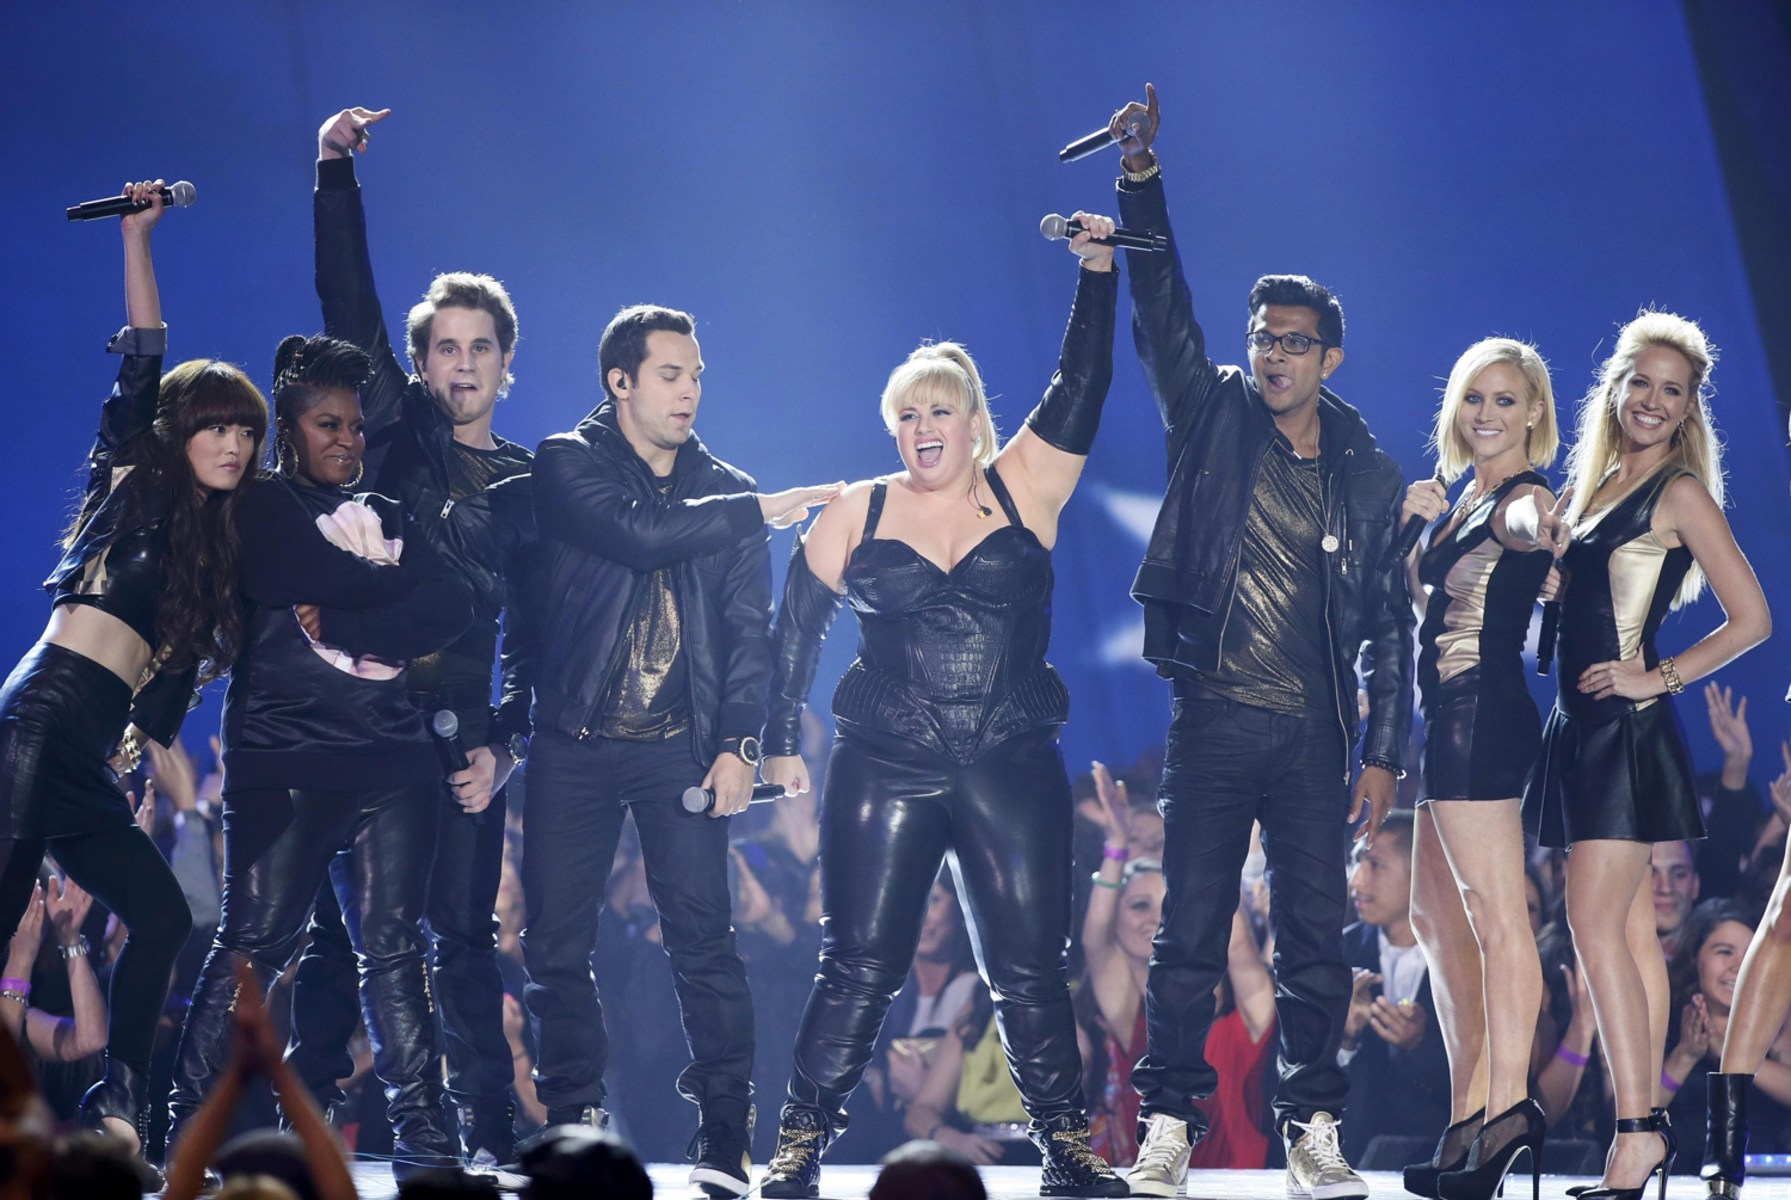 Image: Host Rebel Wilson opens the show at the 2013 MTV Movie Awards in Culver City, California